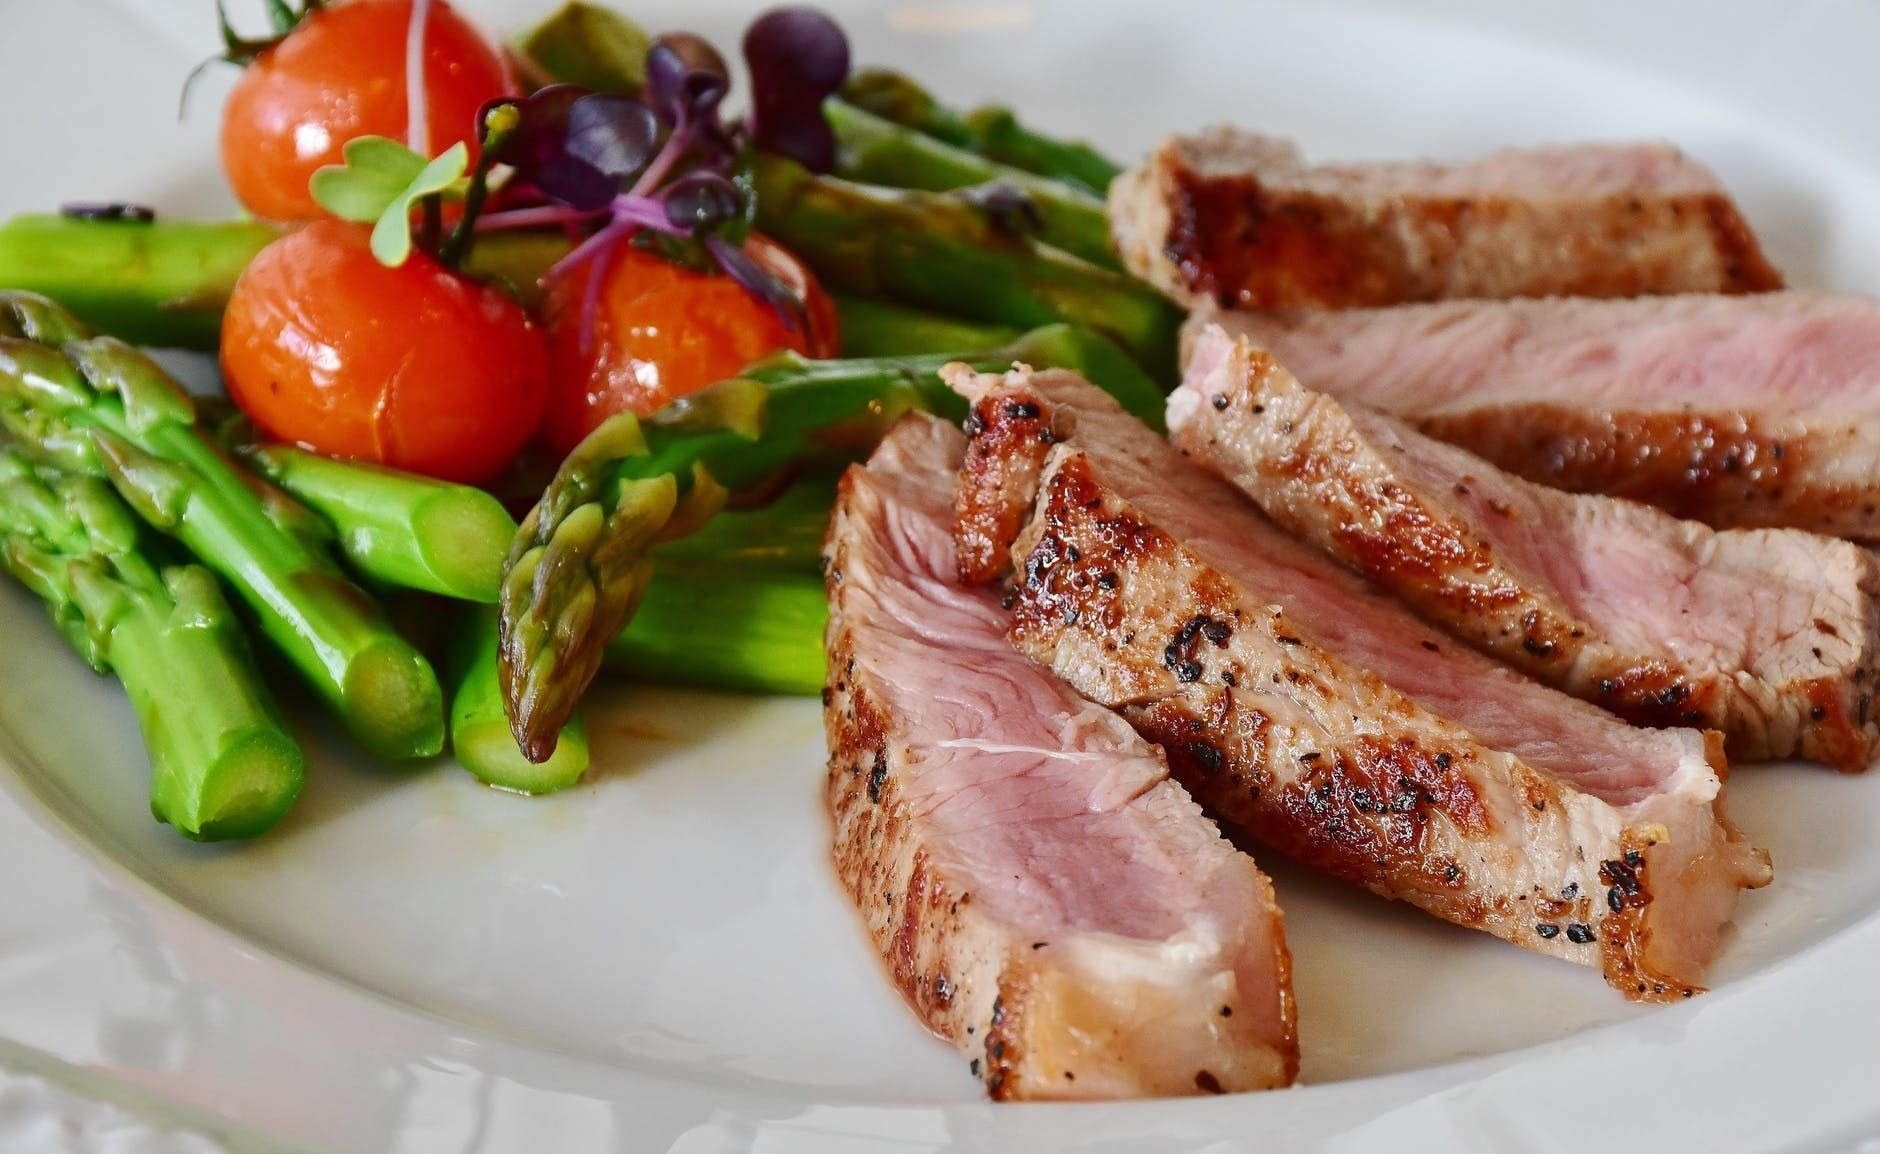 Asparagus steak veal steak veal 361184